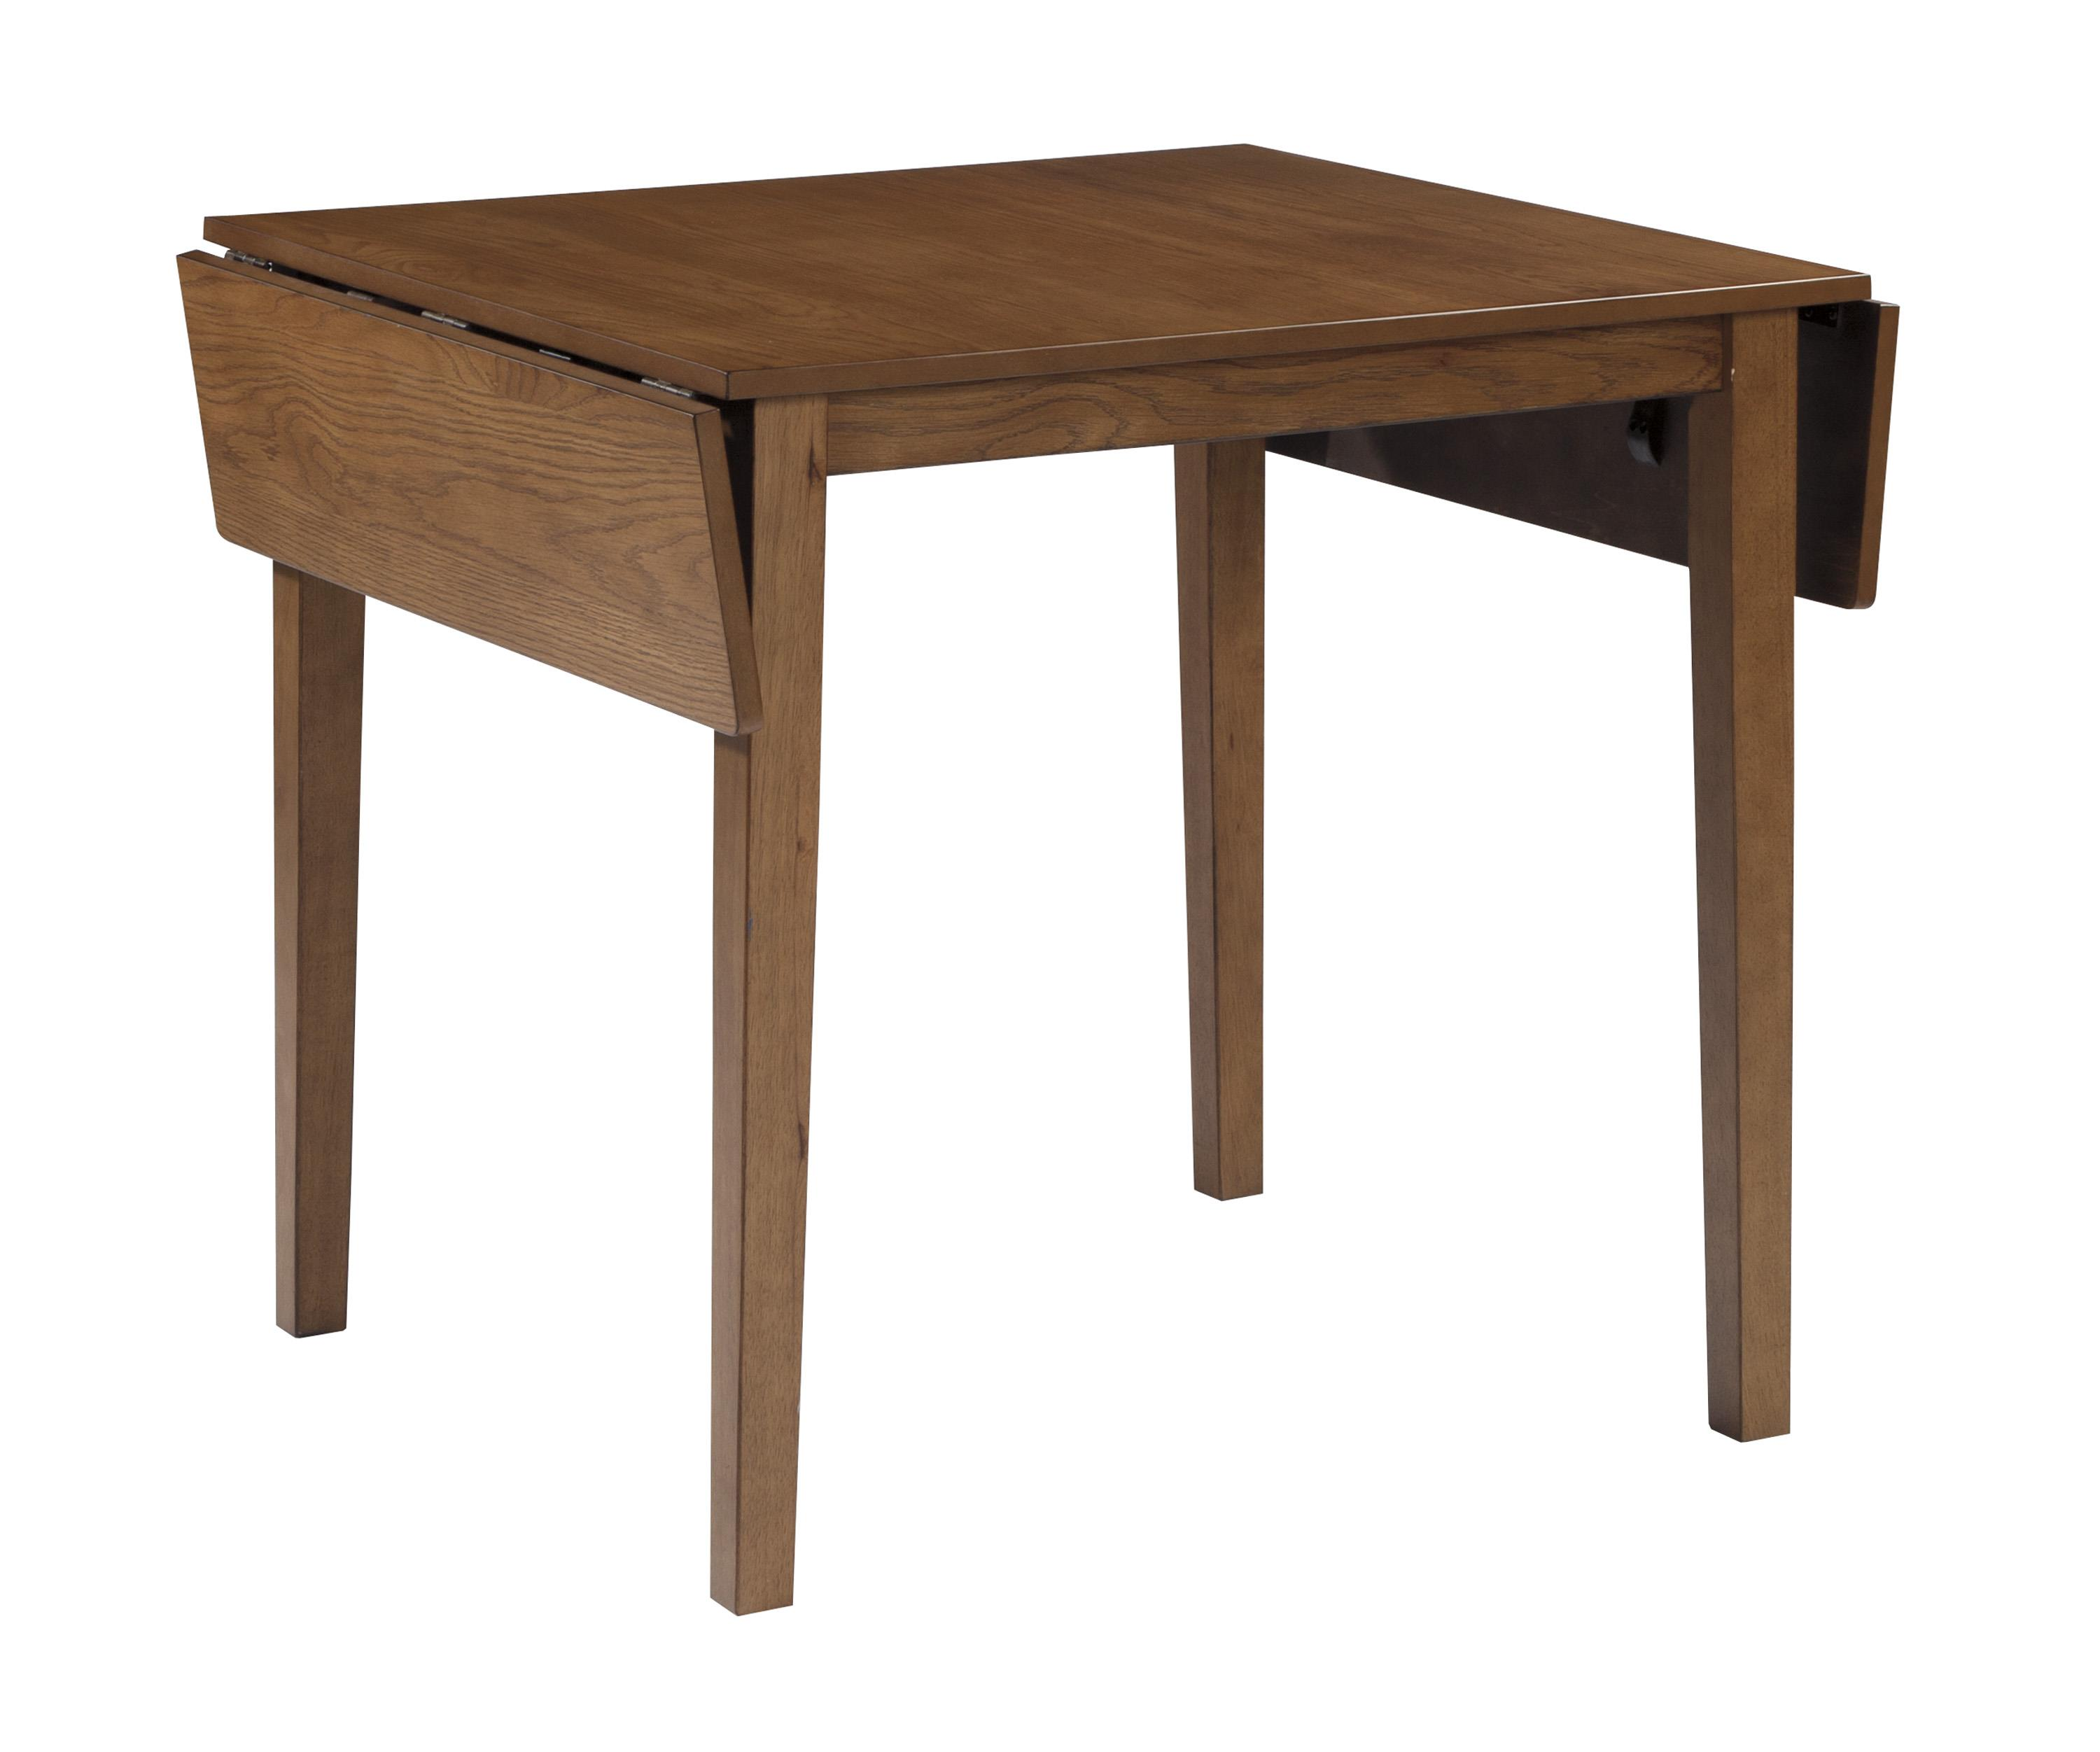 Dining Room Table W/ Oak Veneers And Drop Leaf By Signature Design By . Full resolution  img, nominally Width 3000 Height 2503 pixels, img with #684830.